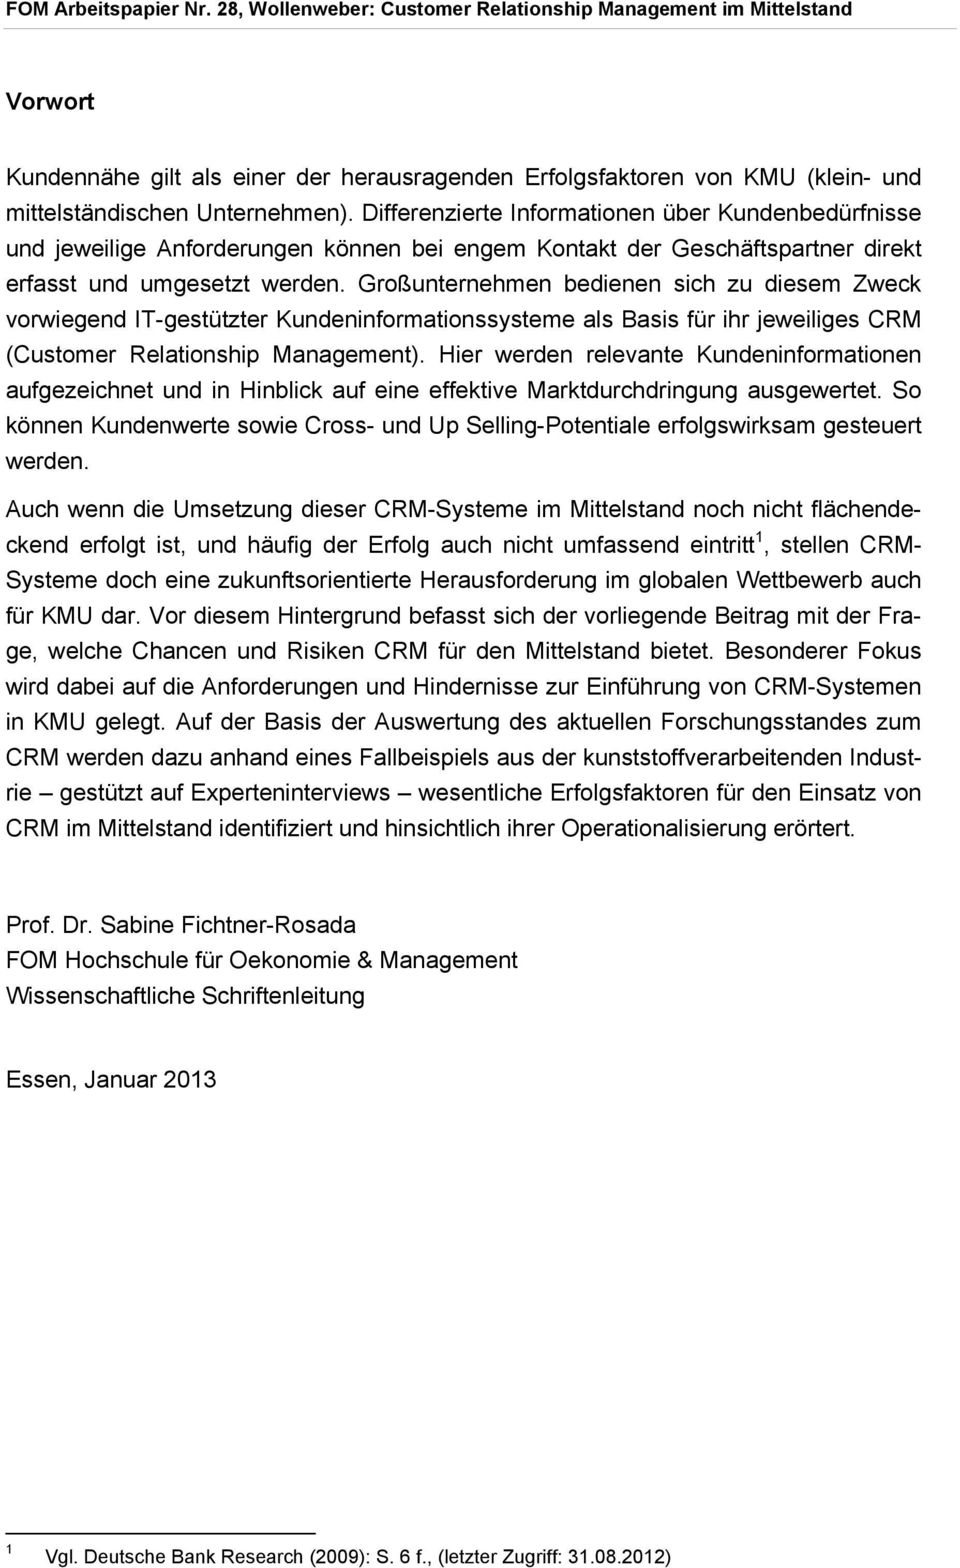 Großunternehmen bedienen sich zu diesem Zweck vorwiegend IT-gestützter Kundeninformationssysteme als Basis für ihr jeweiliges CRM (Customer Relationship Management).